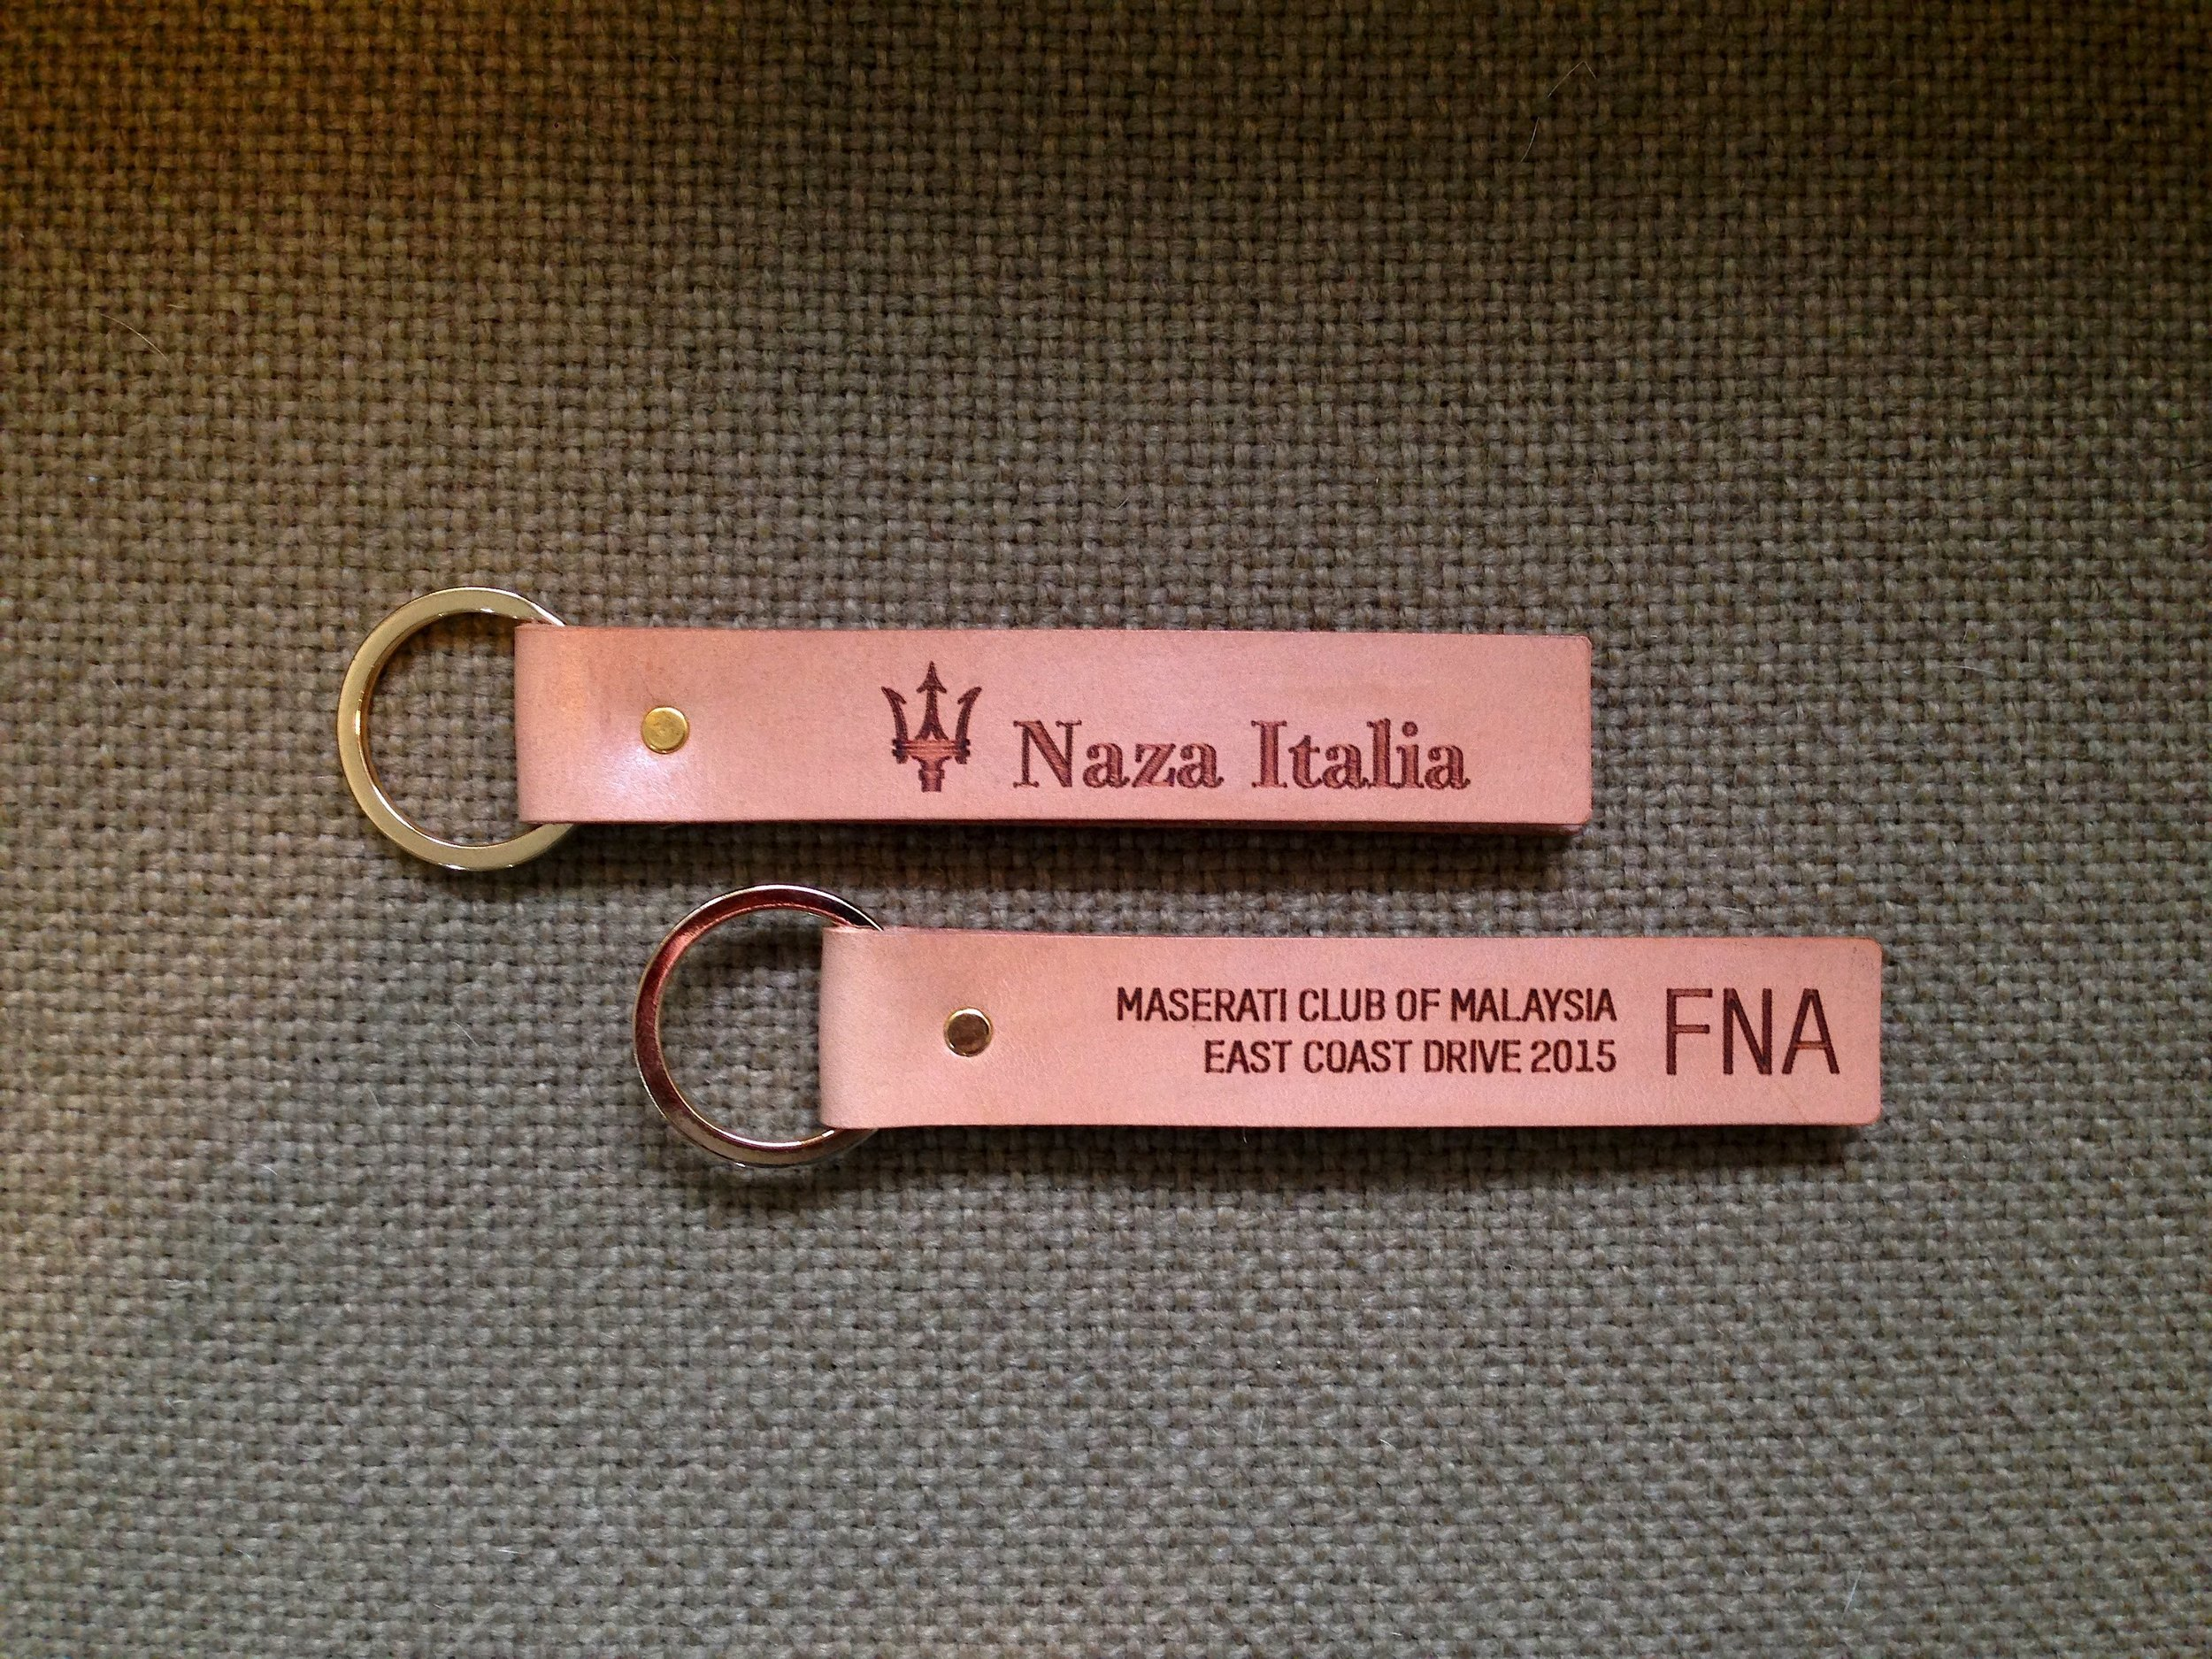 34life-corporate-events-workshops-gifts-products-designs-calfskin-leather-key-holder-ring-chain-naza-maserati-personalised-doorgift-02w.jpg